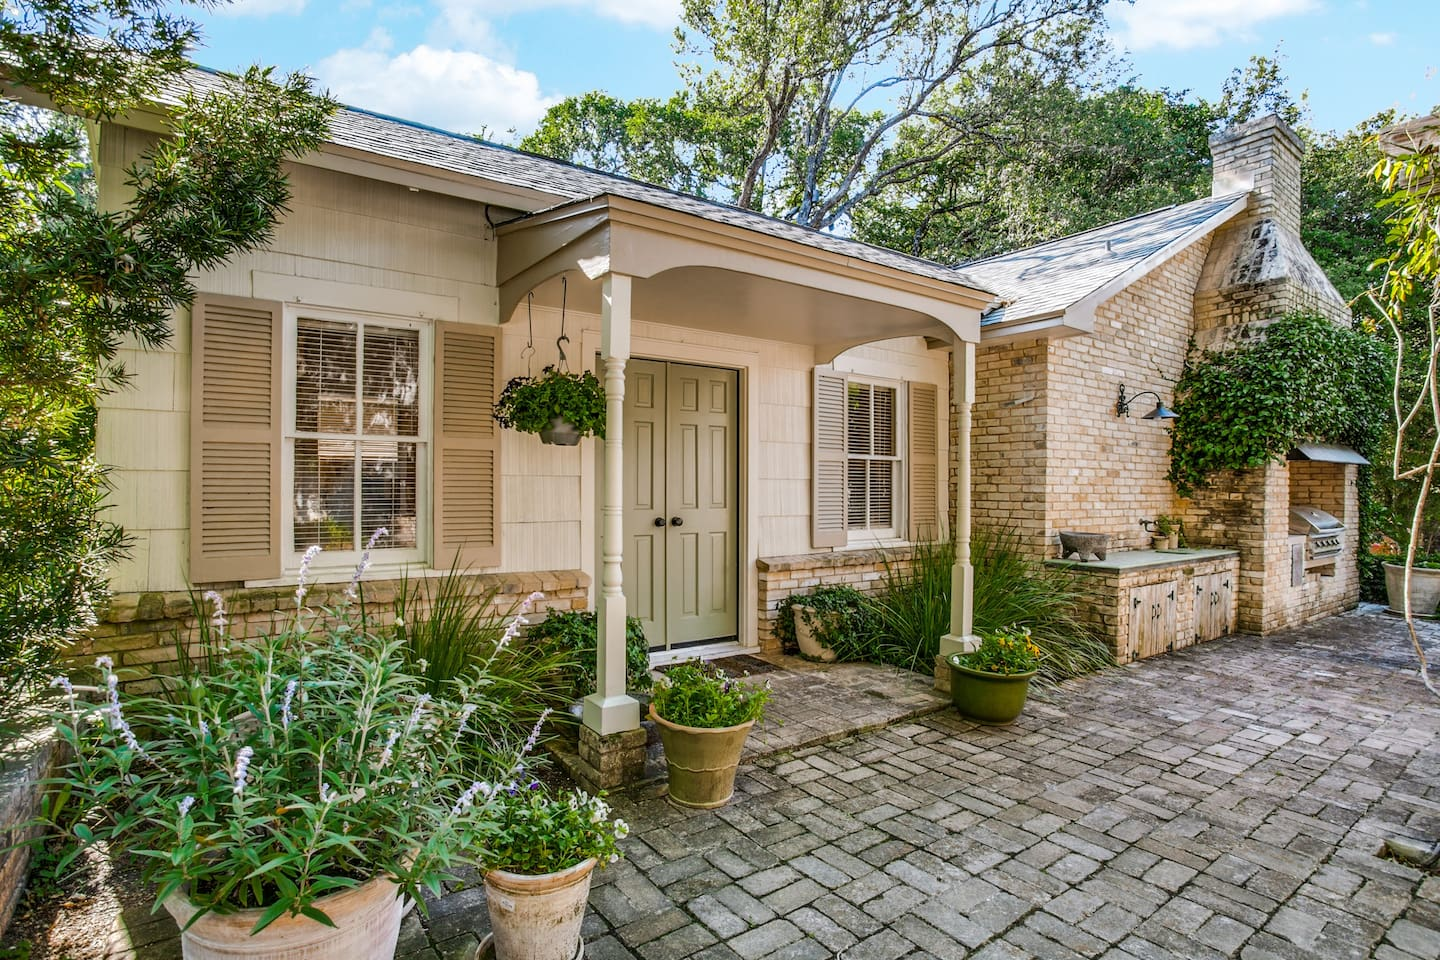 Isabelle's Cottage - approximately 360 s/f per Bexar County Appraisal District